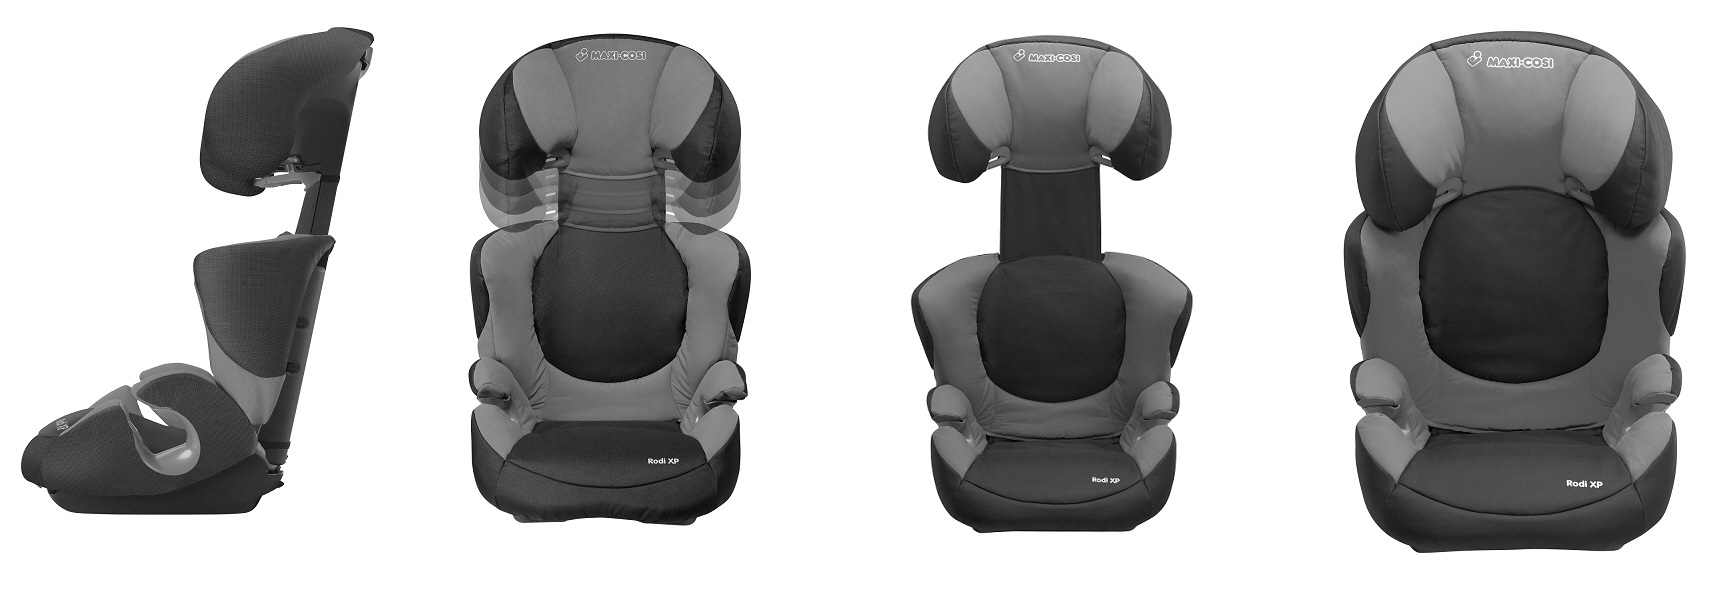 maxi cosi car seat rodi xp 2013 buy at kidsroom. Black Bedroom Furniture Sets. Home Design Ideas